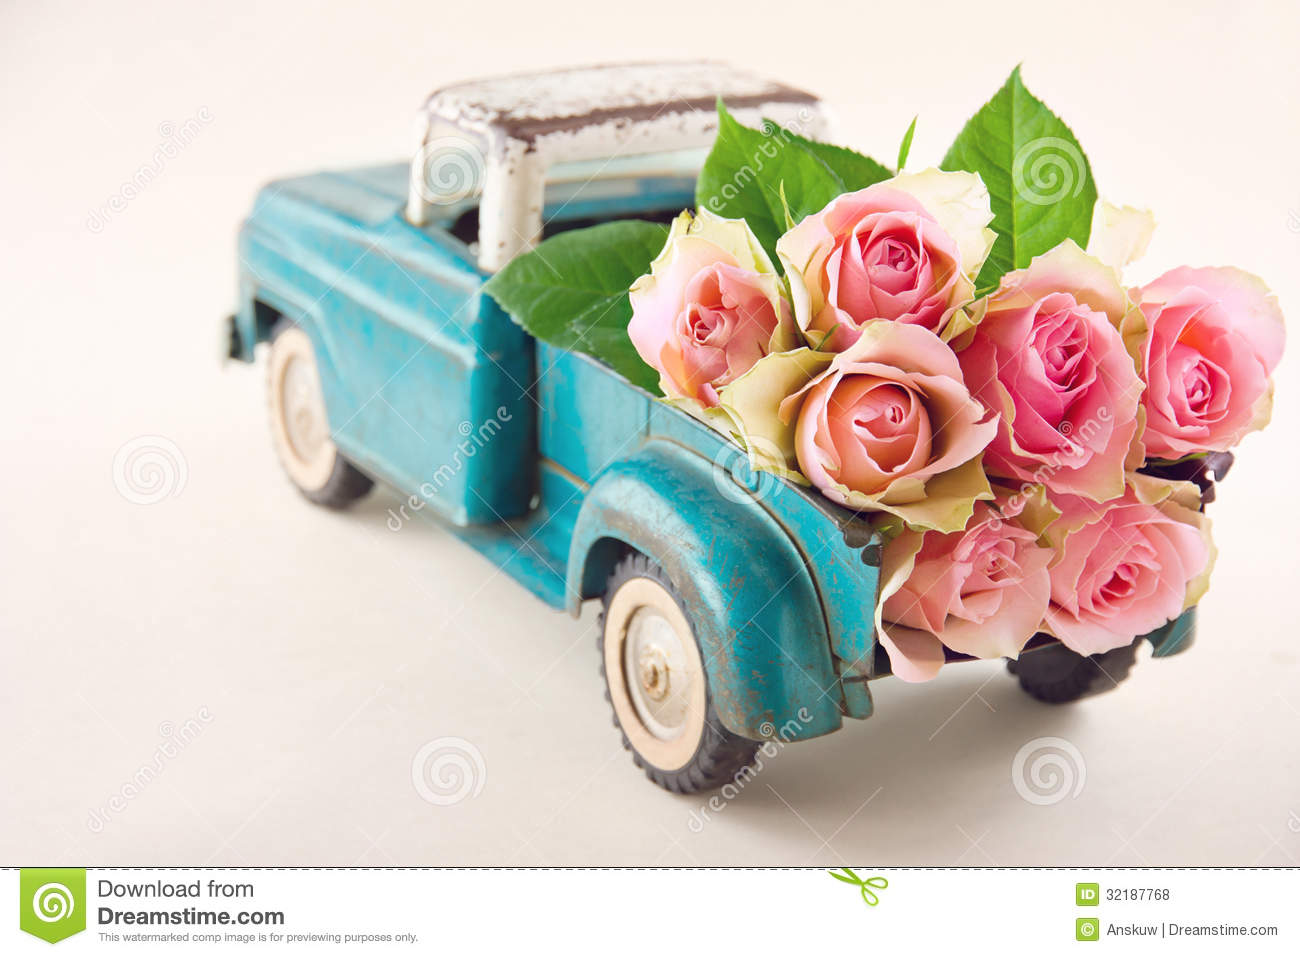 Antique toy truck carrying pink roses